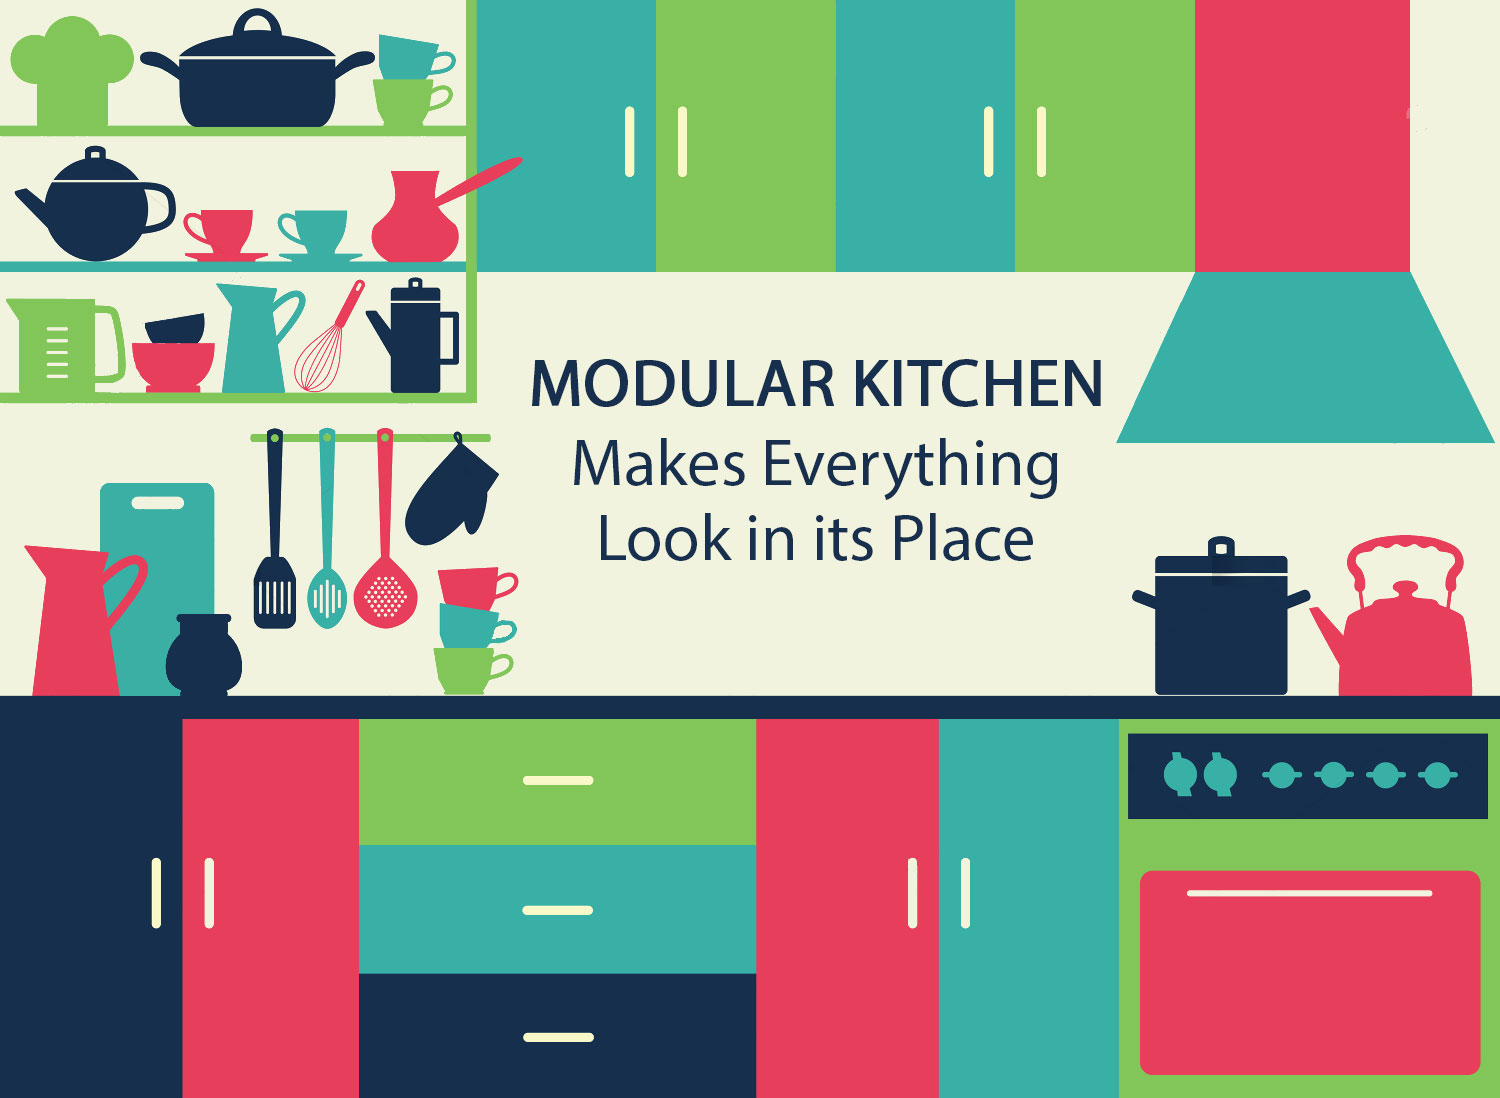 modular kitchen, modular kitchen design, modular kitchen interior